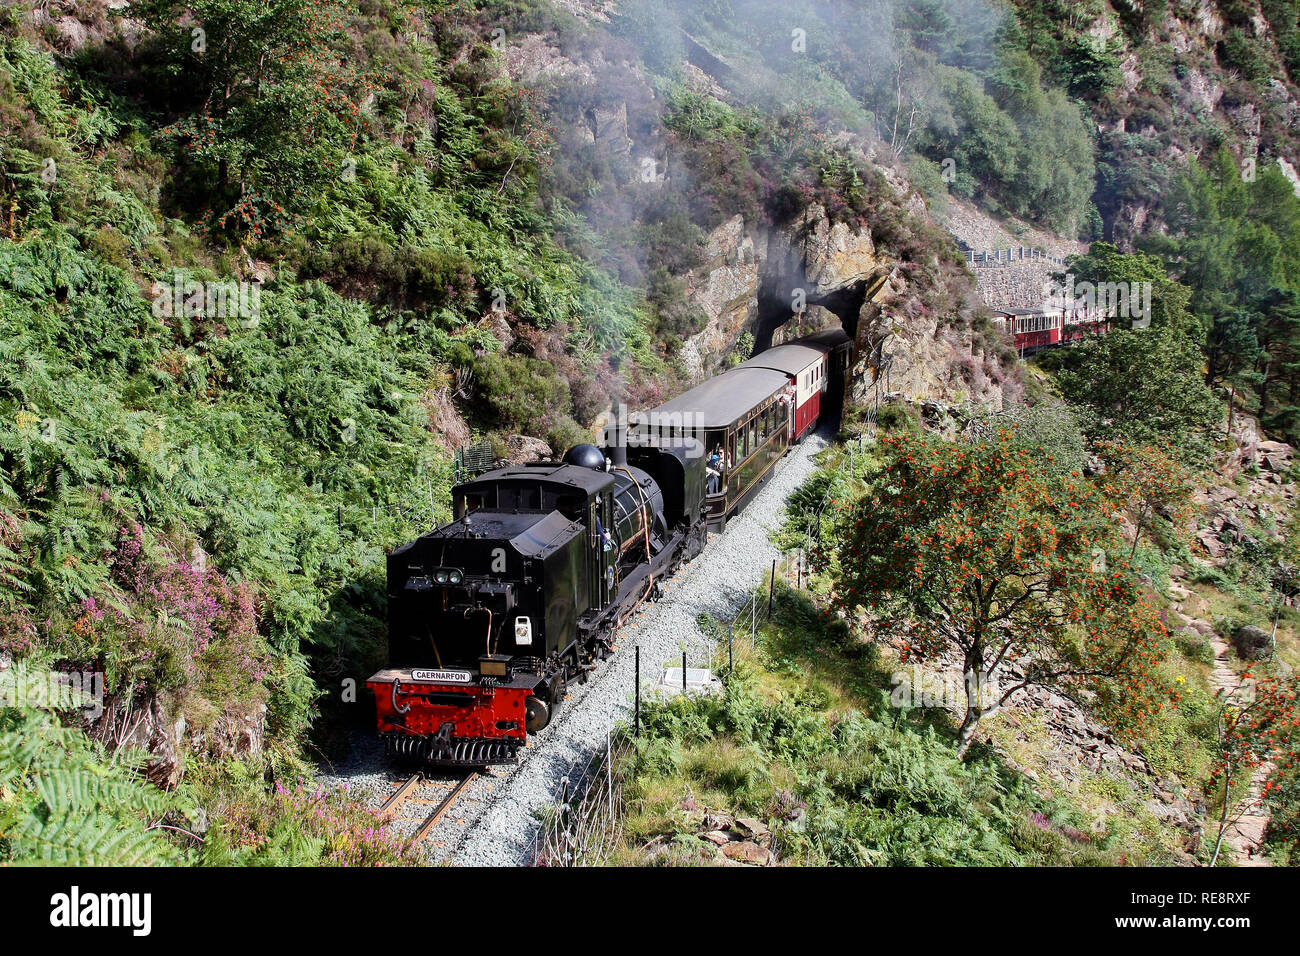 No 143 heads the Aberglaslyn pass on the welsh Highland railway. - Stock Image